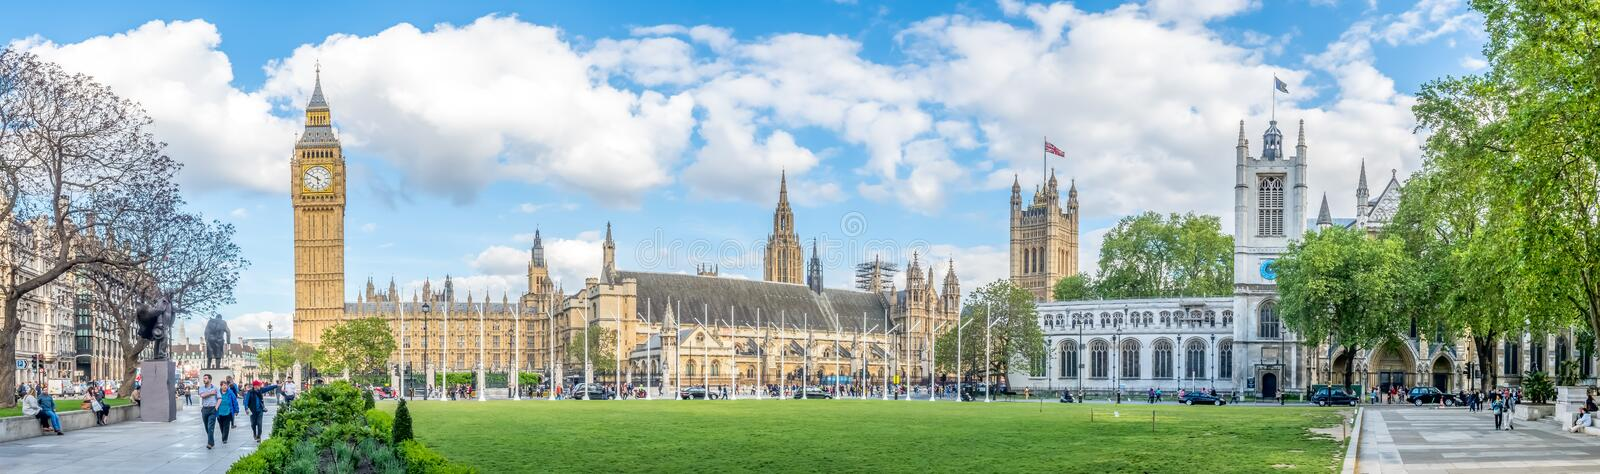 Big Ben from Paliament square garden in London. LONDON - MAY 24: Big Ben clock tower and Palace of Westminster view from Parliament square garden under cloudy stock photo